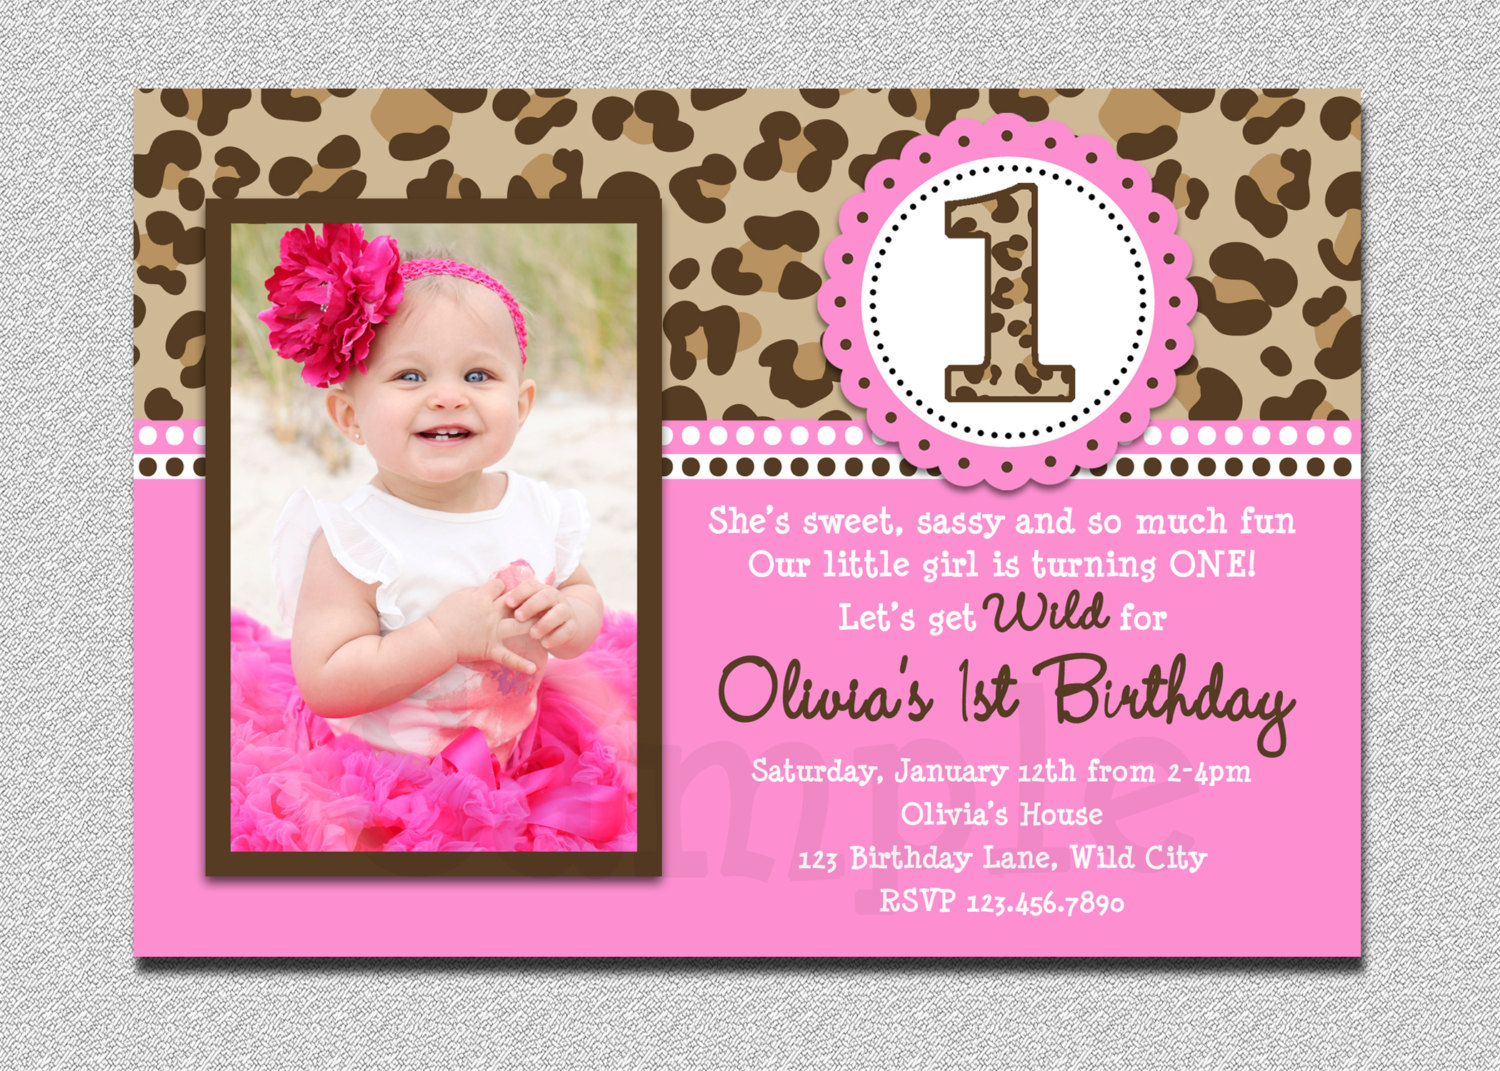 1st birthday photo invitations ; 1st-birthday-invites-to-inspire-you-on-how-to-create-your-own-Birthday-invitation-1